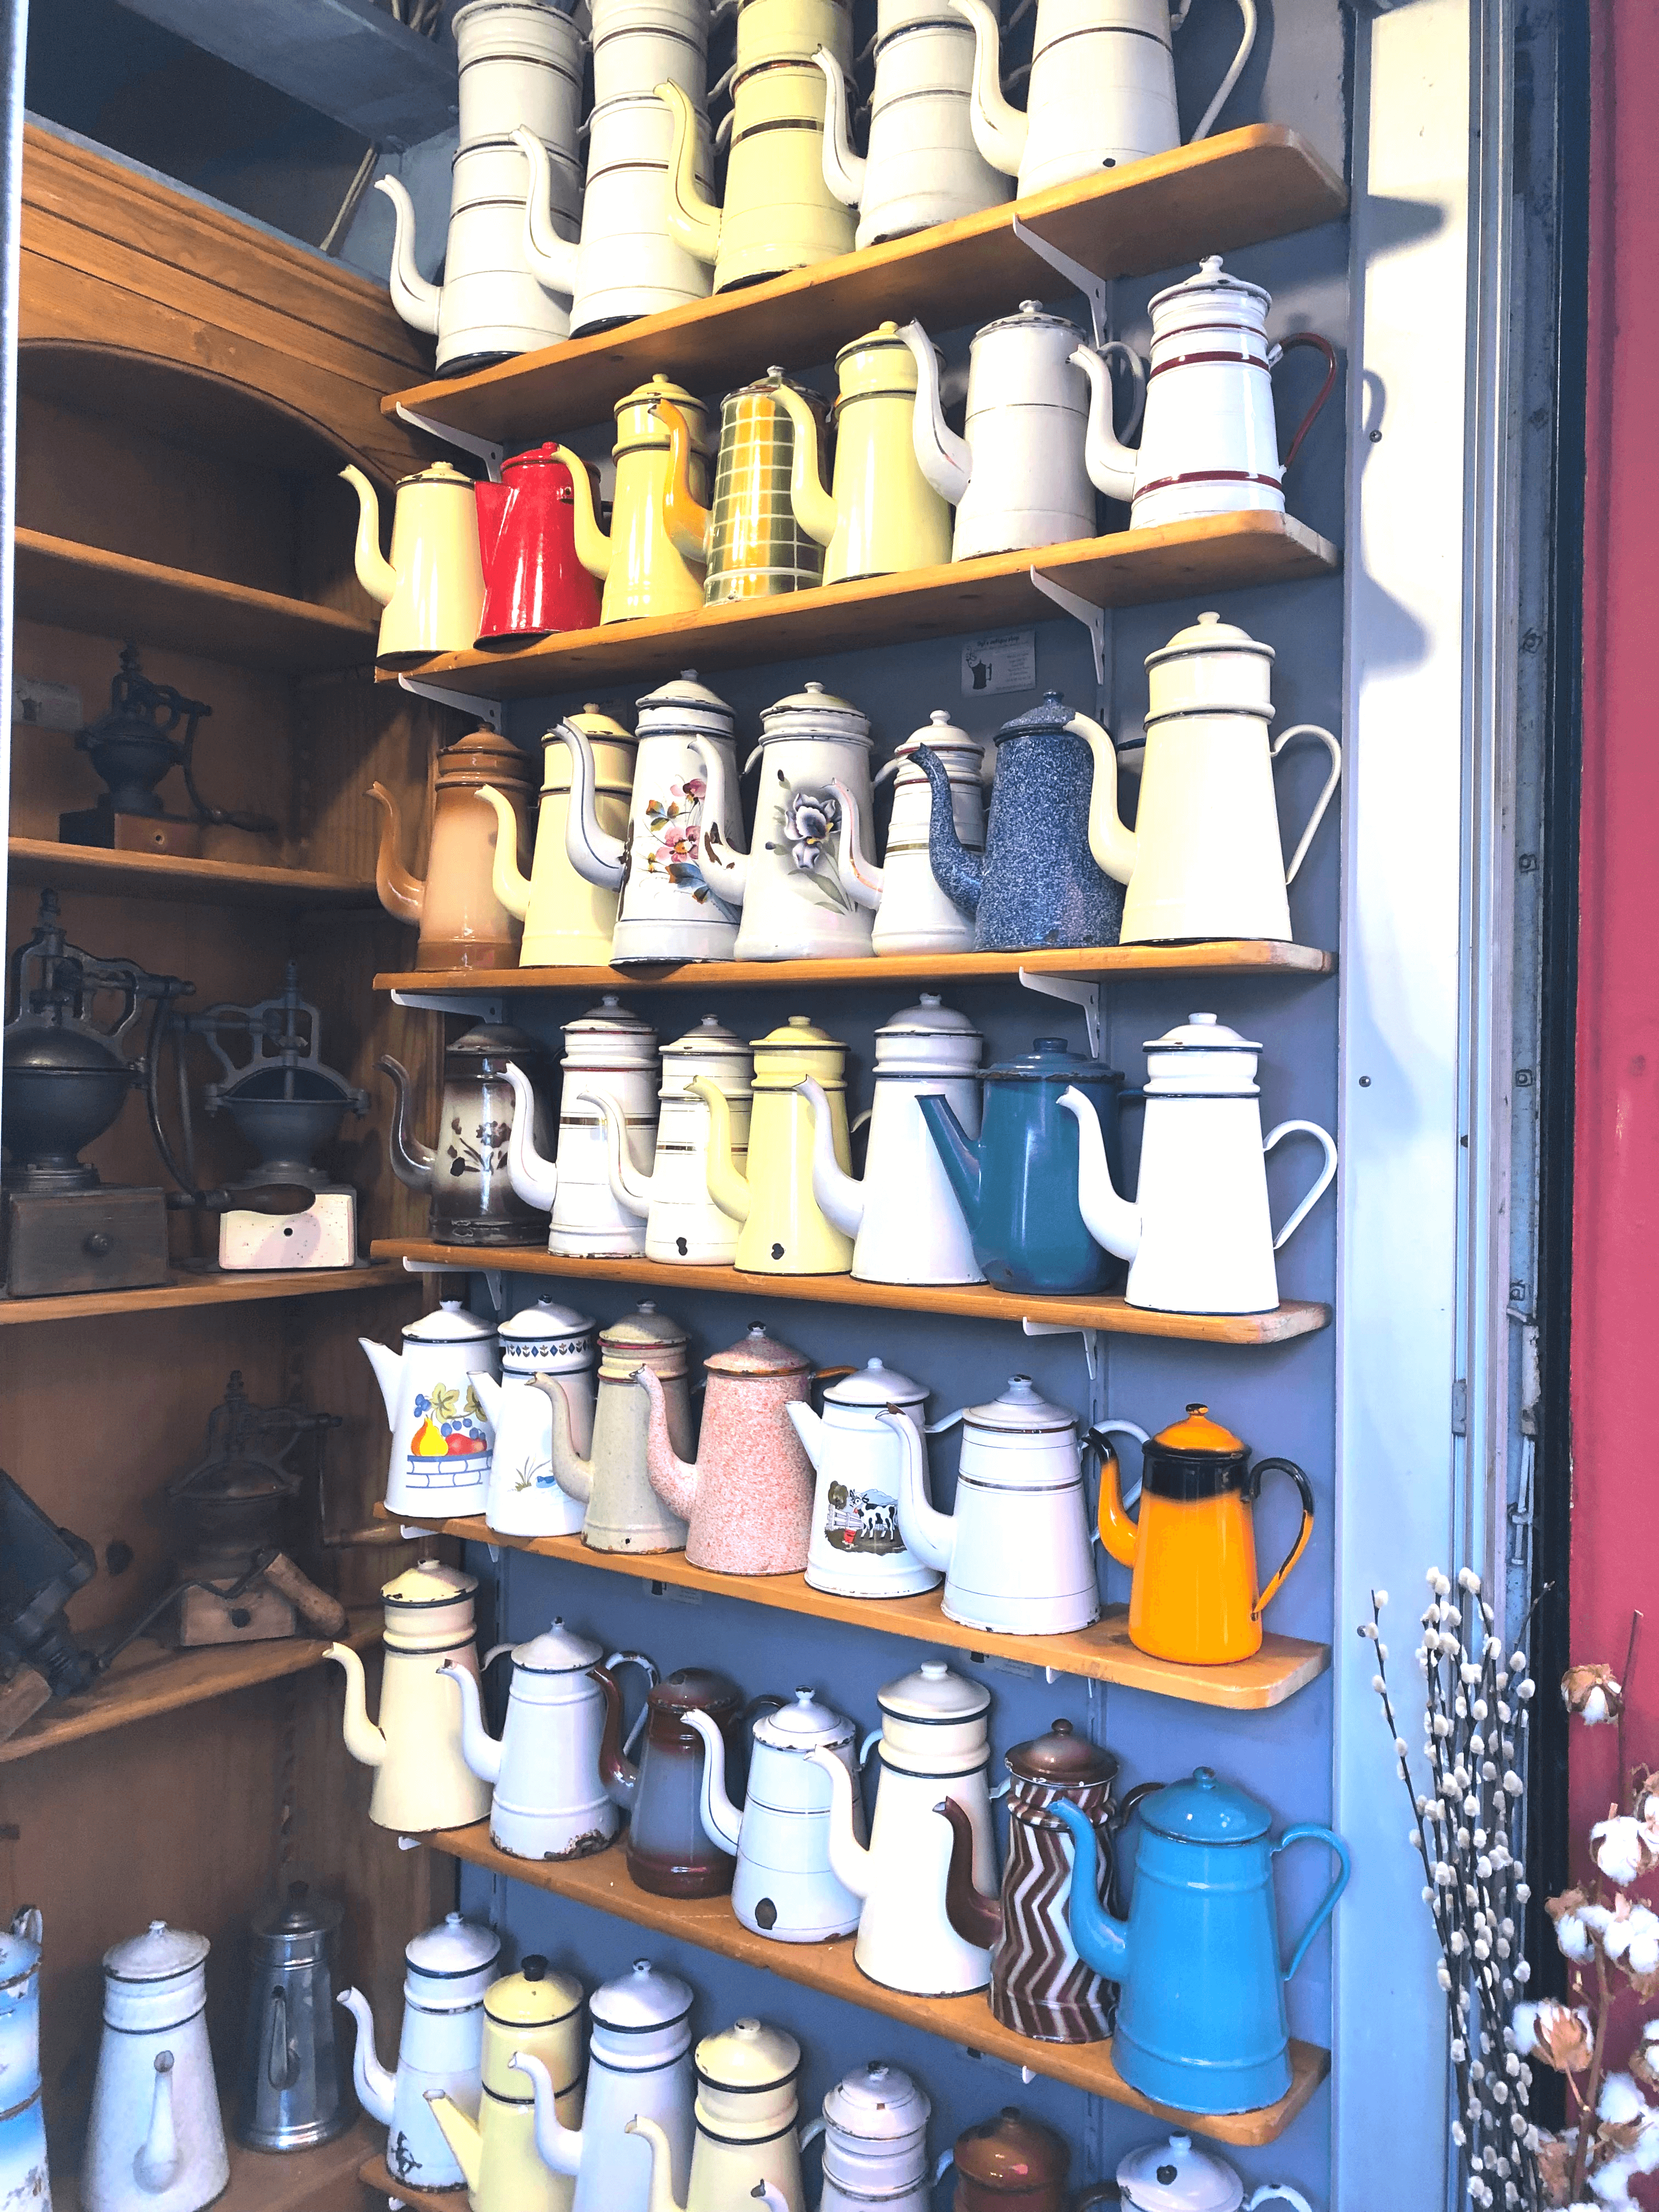 A display of over 30 Vintage French Coffee pots at the Paris Flea Market